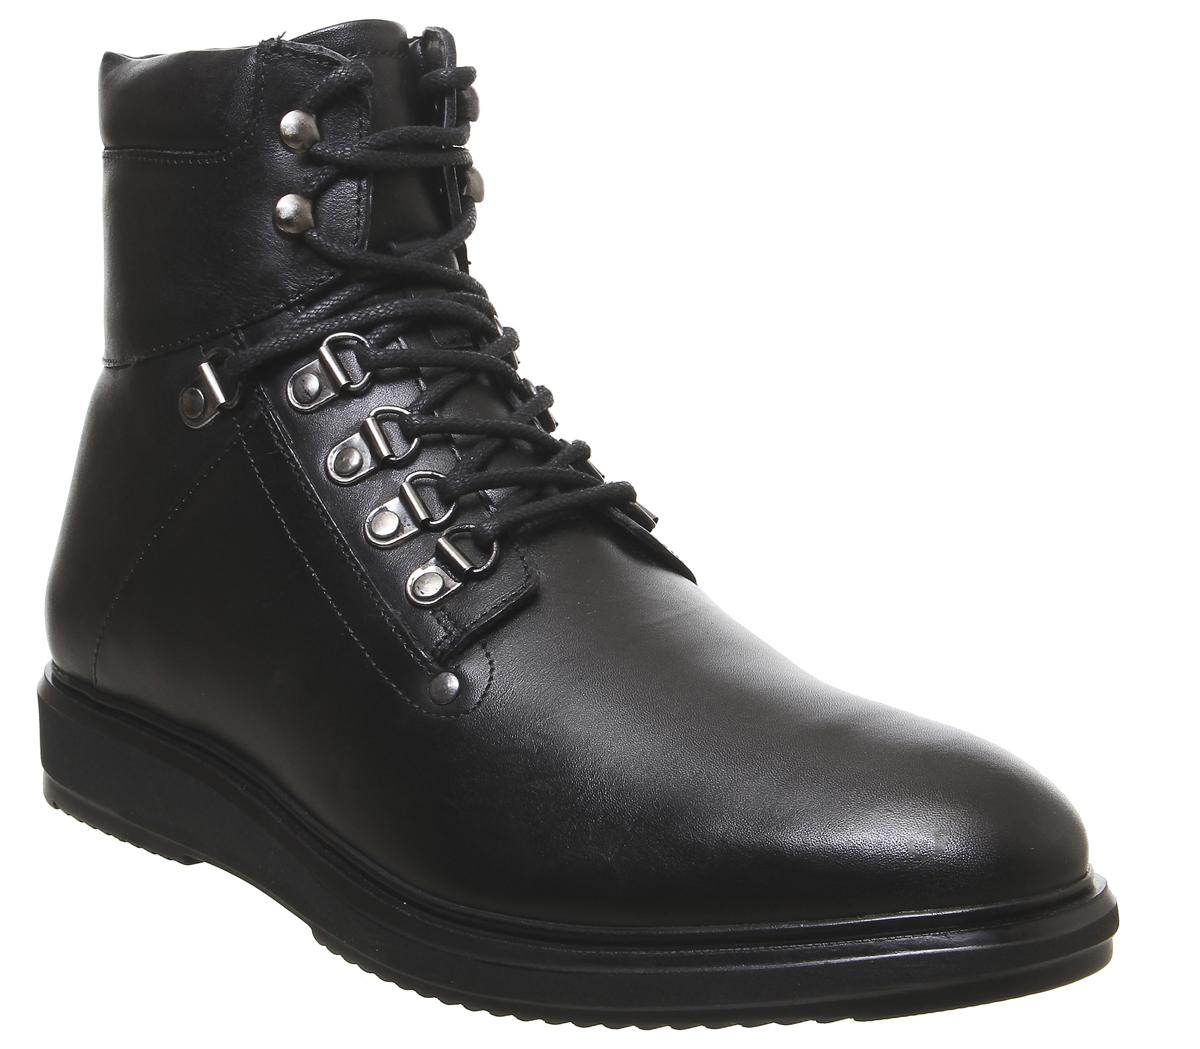 Lead Hiker Boots